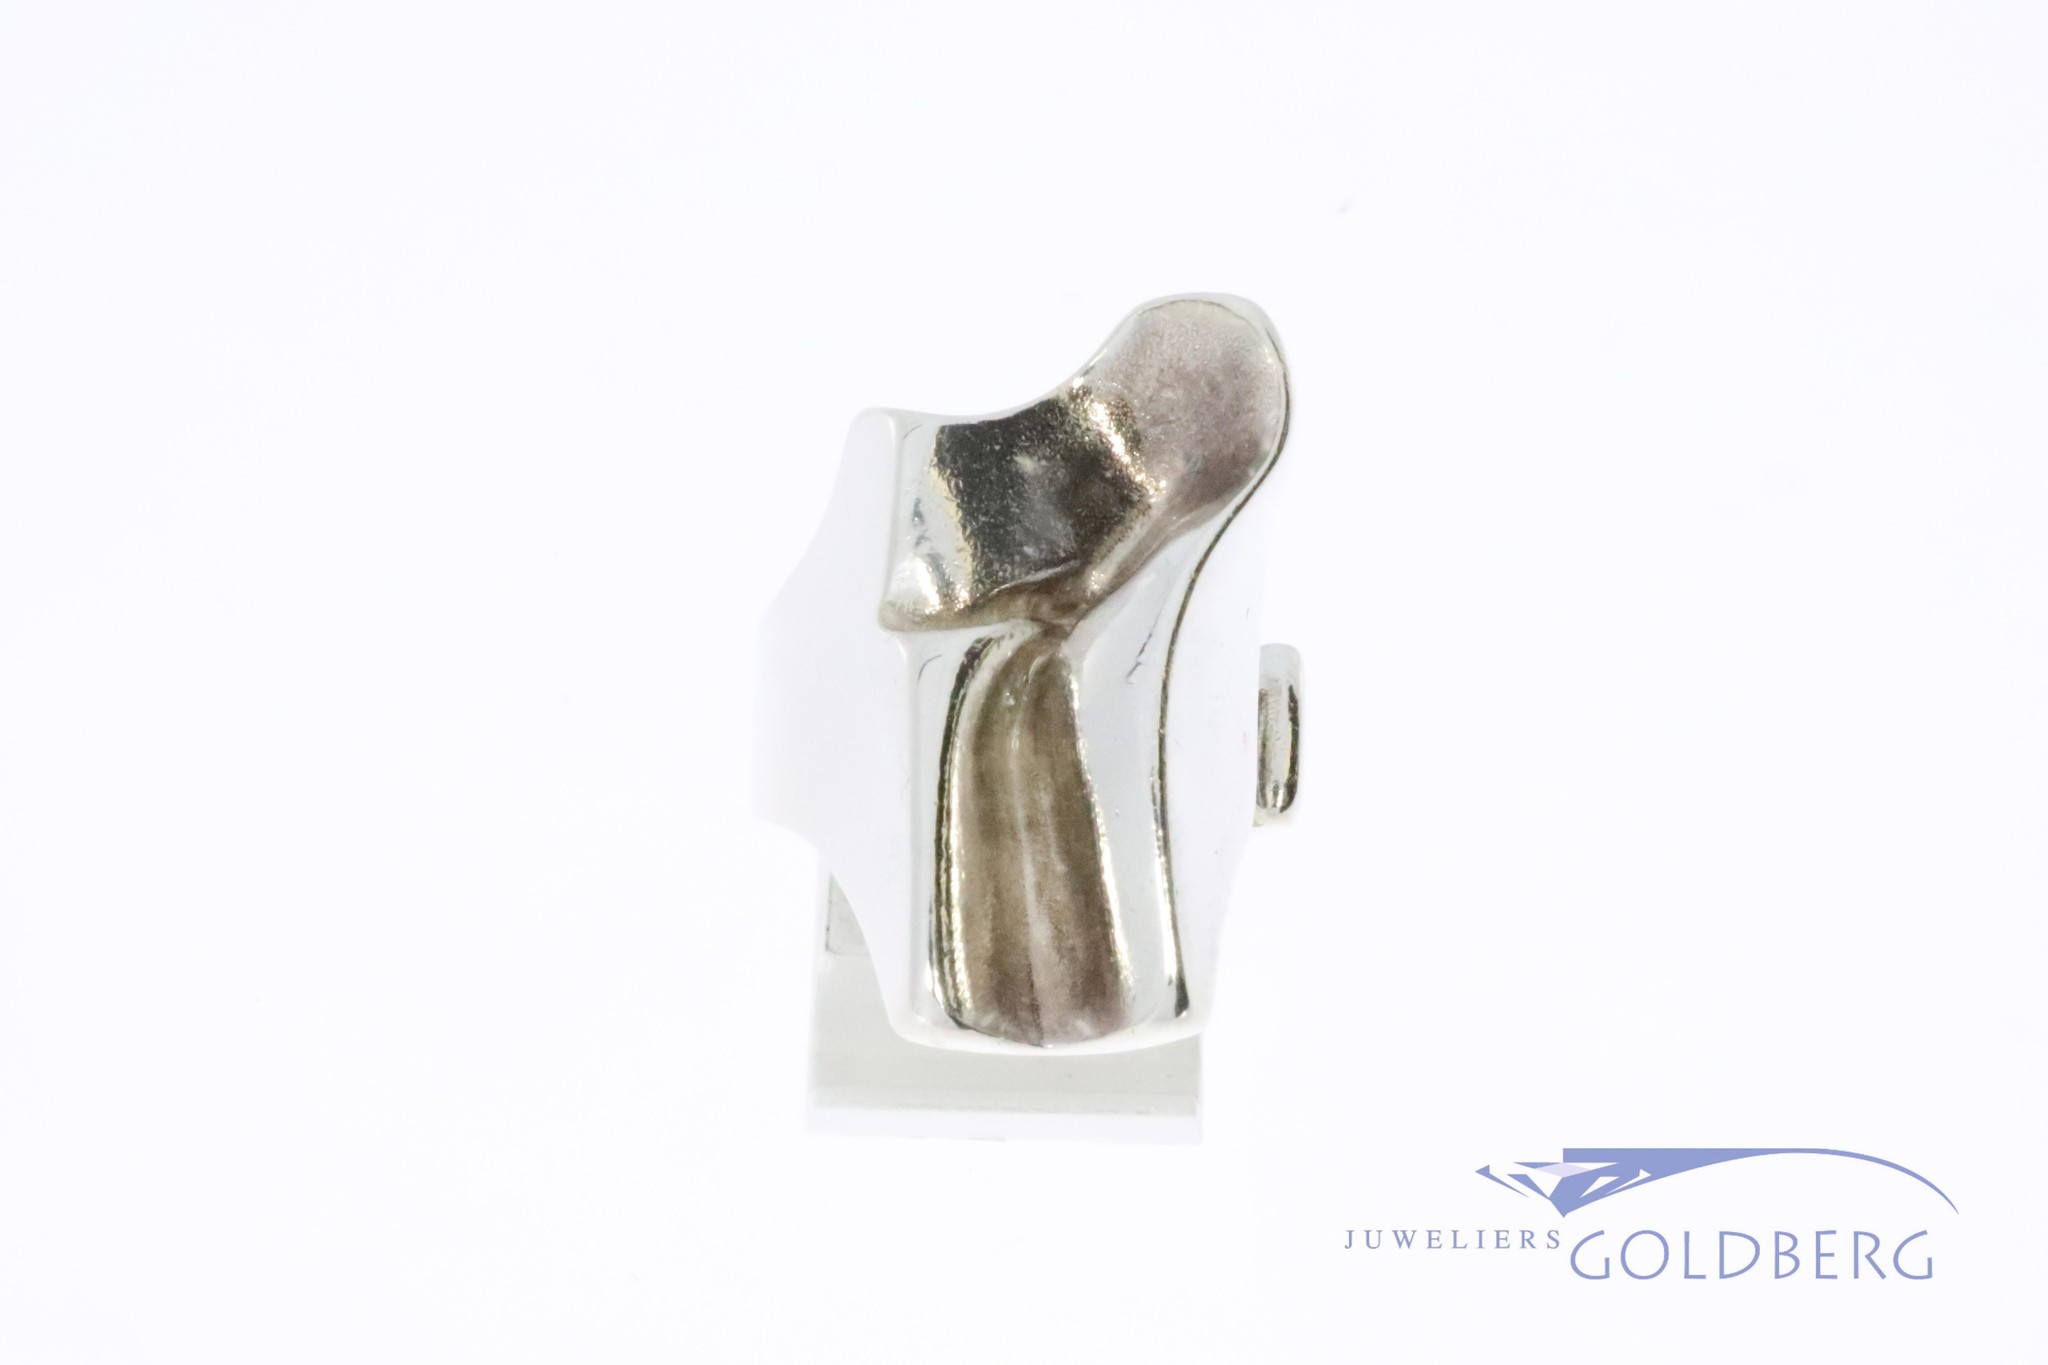 Vintage silver modernist Lapponia ring by Bjorn Weckstrom 1977